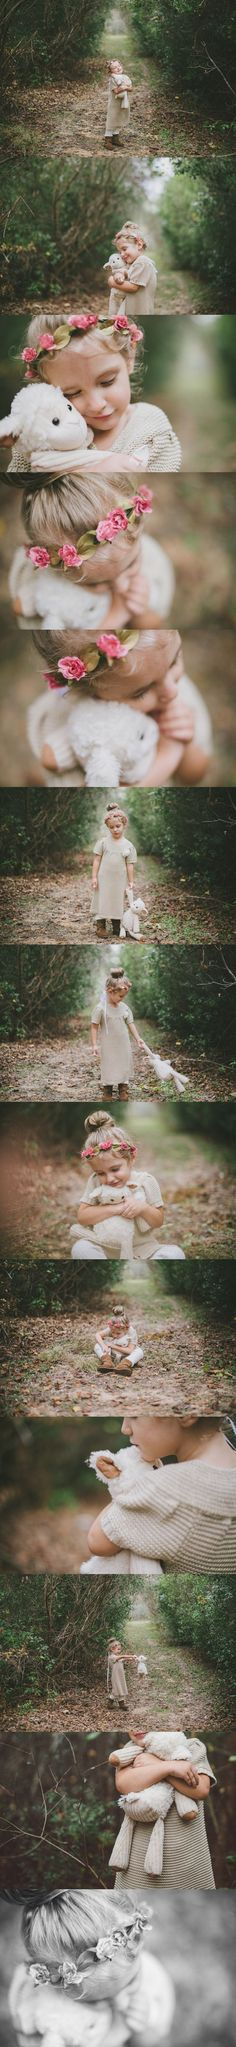 Jessi Field Photography | Children's Portraits Inspiration